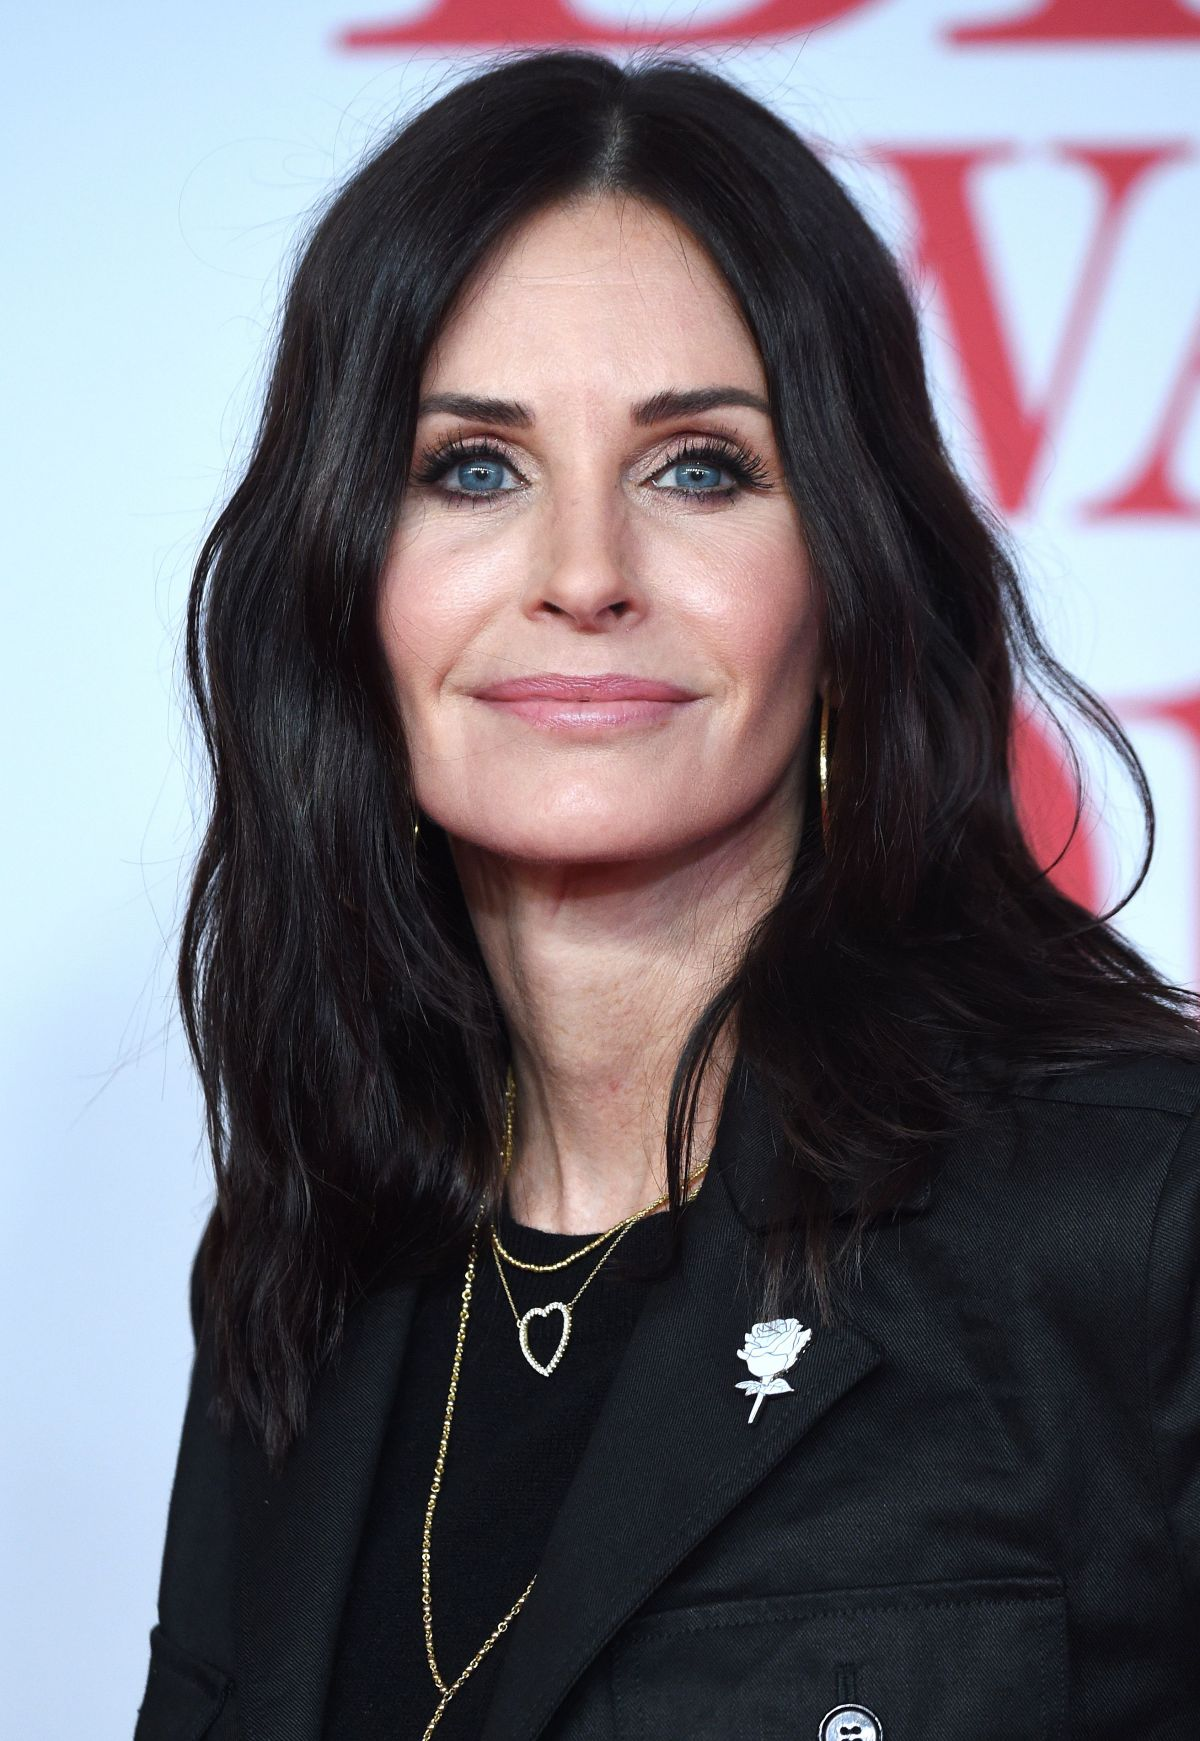 Courteney Cox At Brit Awards 2018 In London 02 21 2018